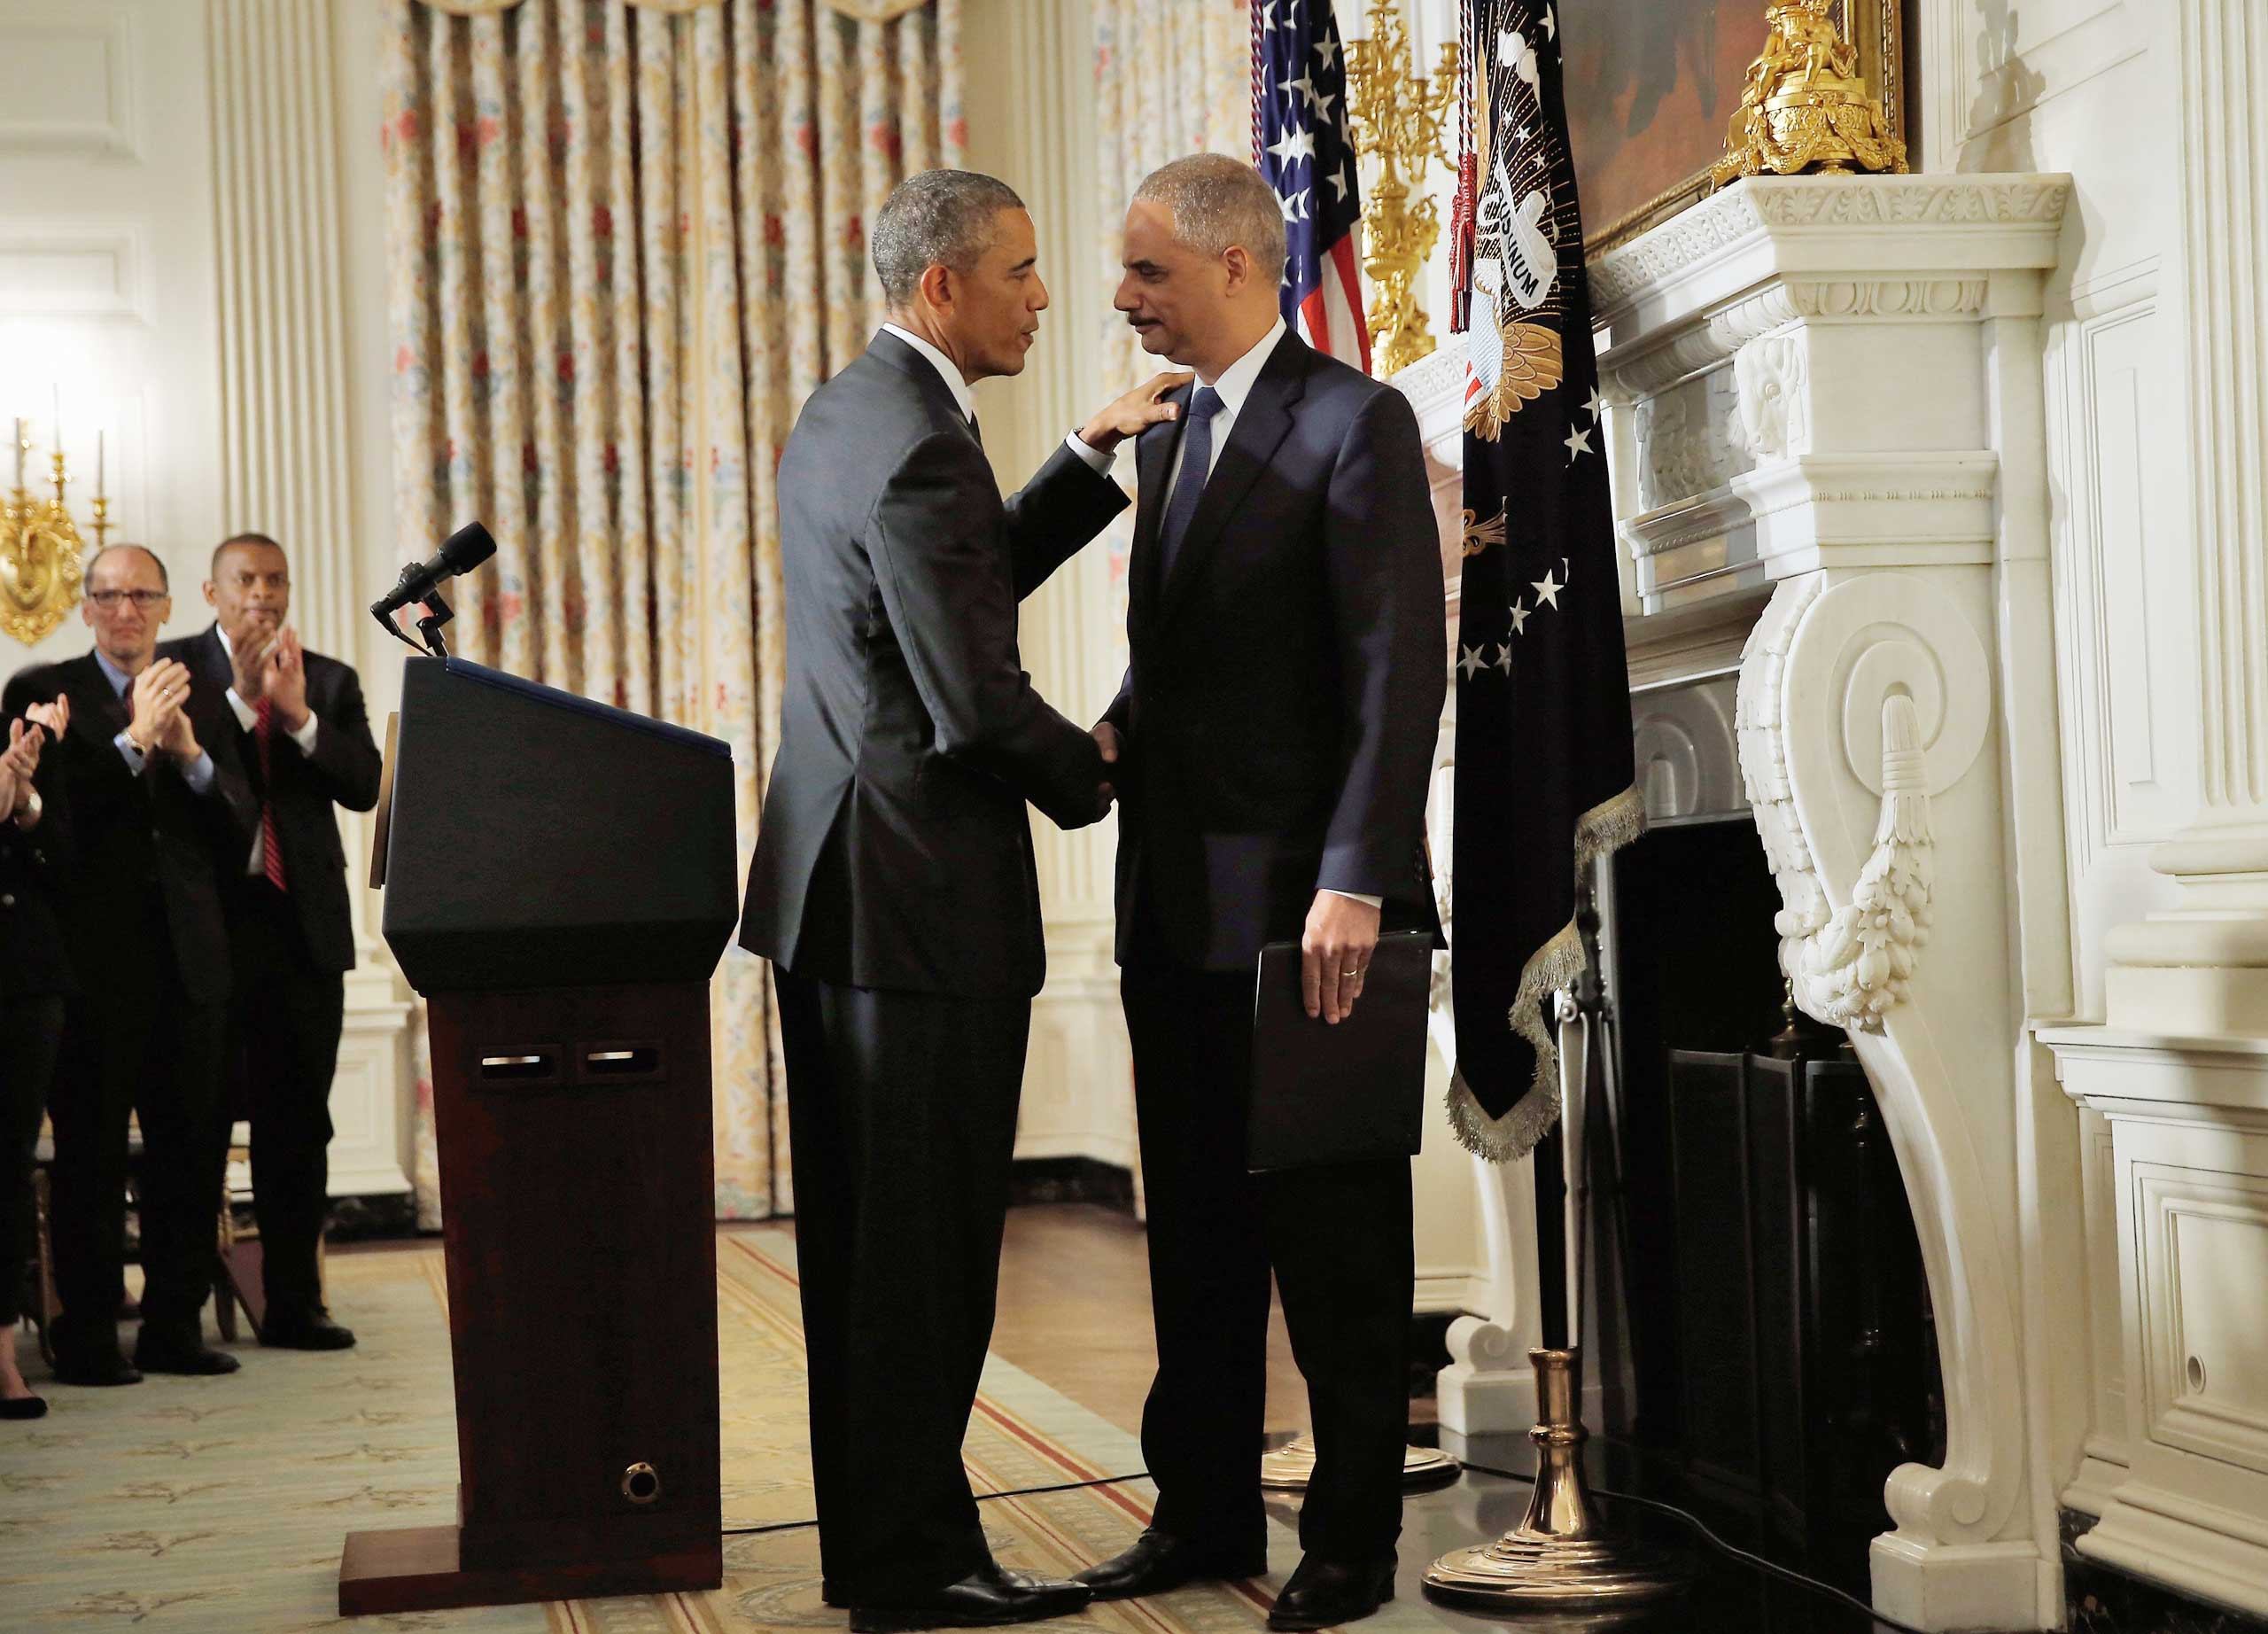 President Barack Obama shakes hands with Attorney General Eric H. Holder Jr. who announced his resignation today, Sept. 25, 2014 in Washington, DC.